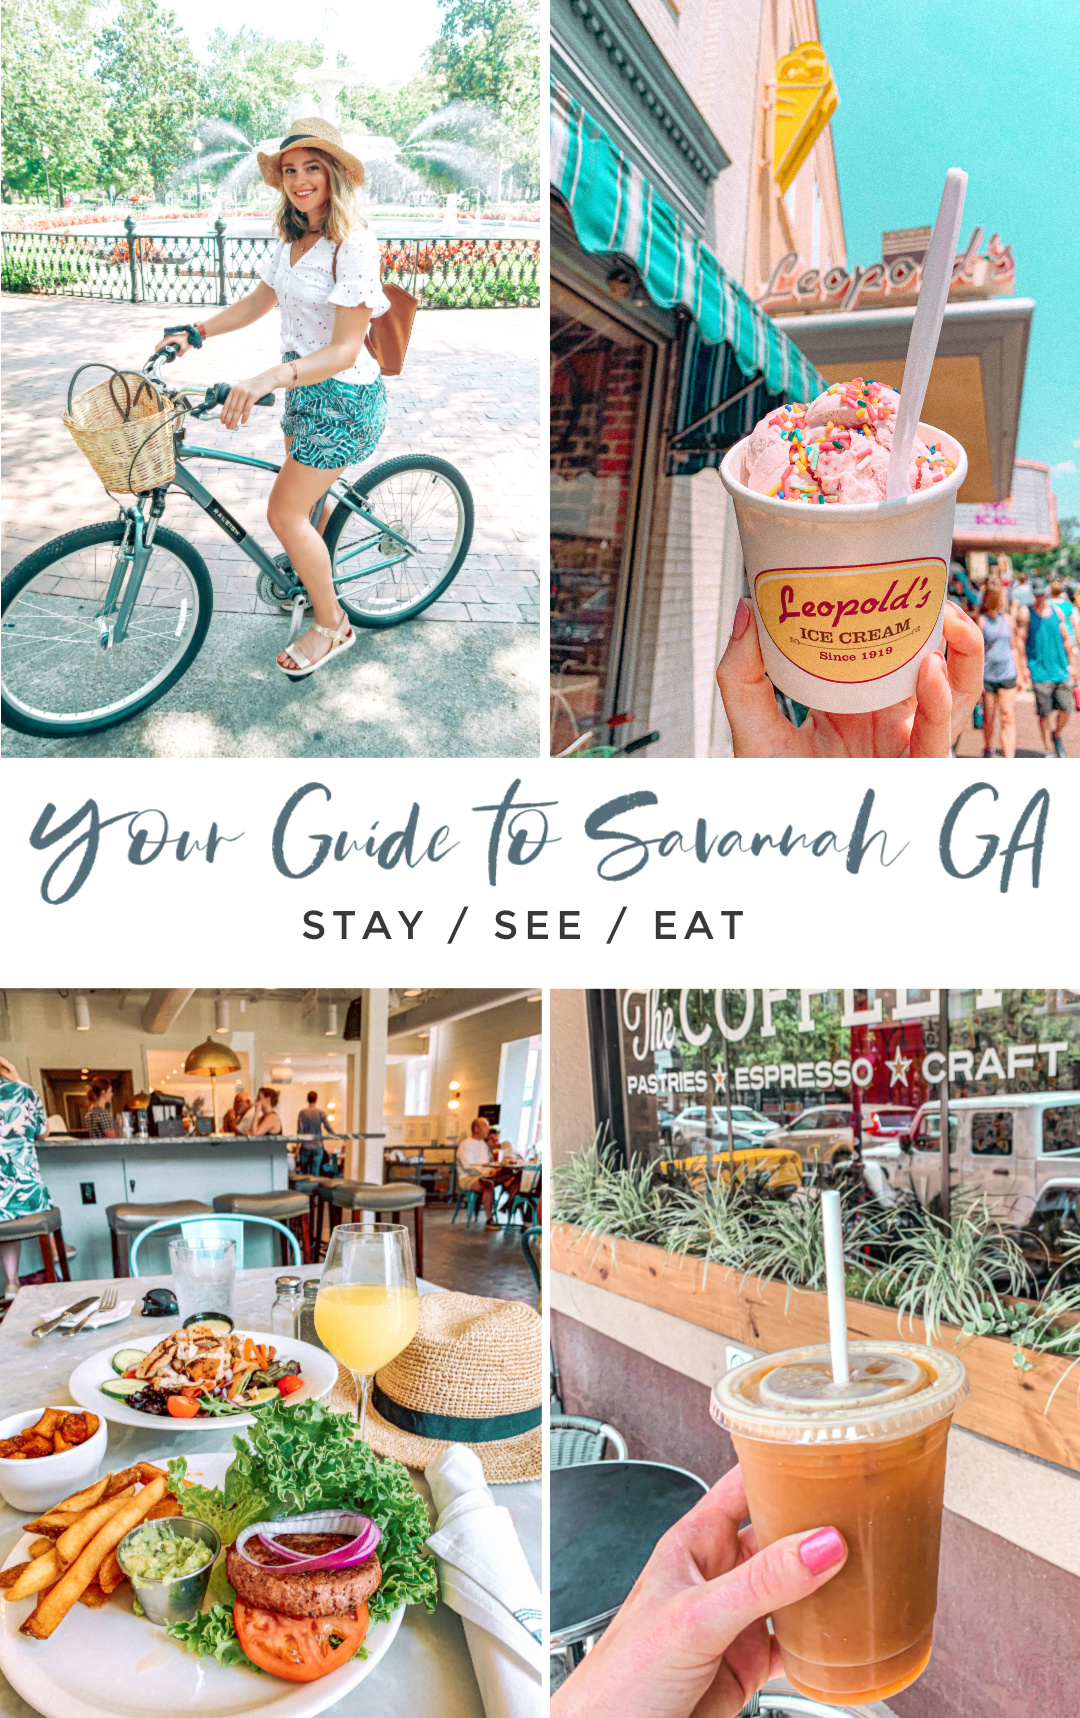 Your Guide to Savannah Georgia, travel, where to eat, travel blog, visiting savannah, what to do, restaurants, coffee shops, bikes, fun, explore wormhole , historic, rivers tree, fountain, parks, food, the grove, coffee shops, best places to visit in Savannah, the south,